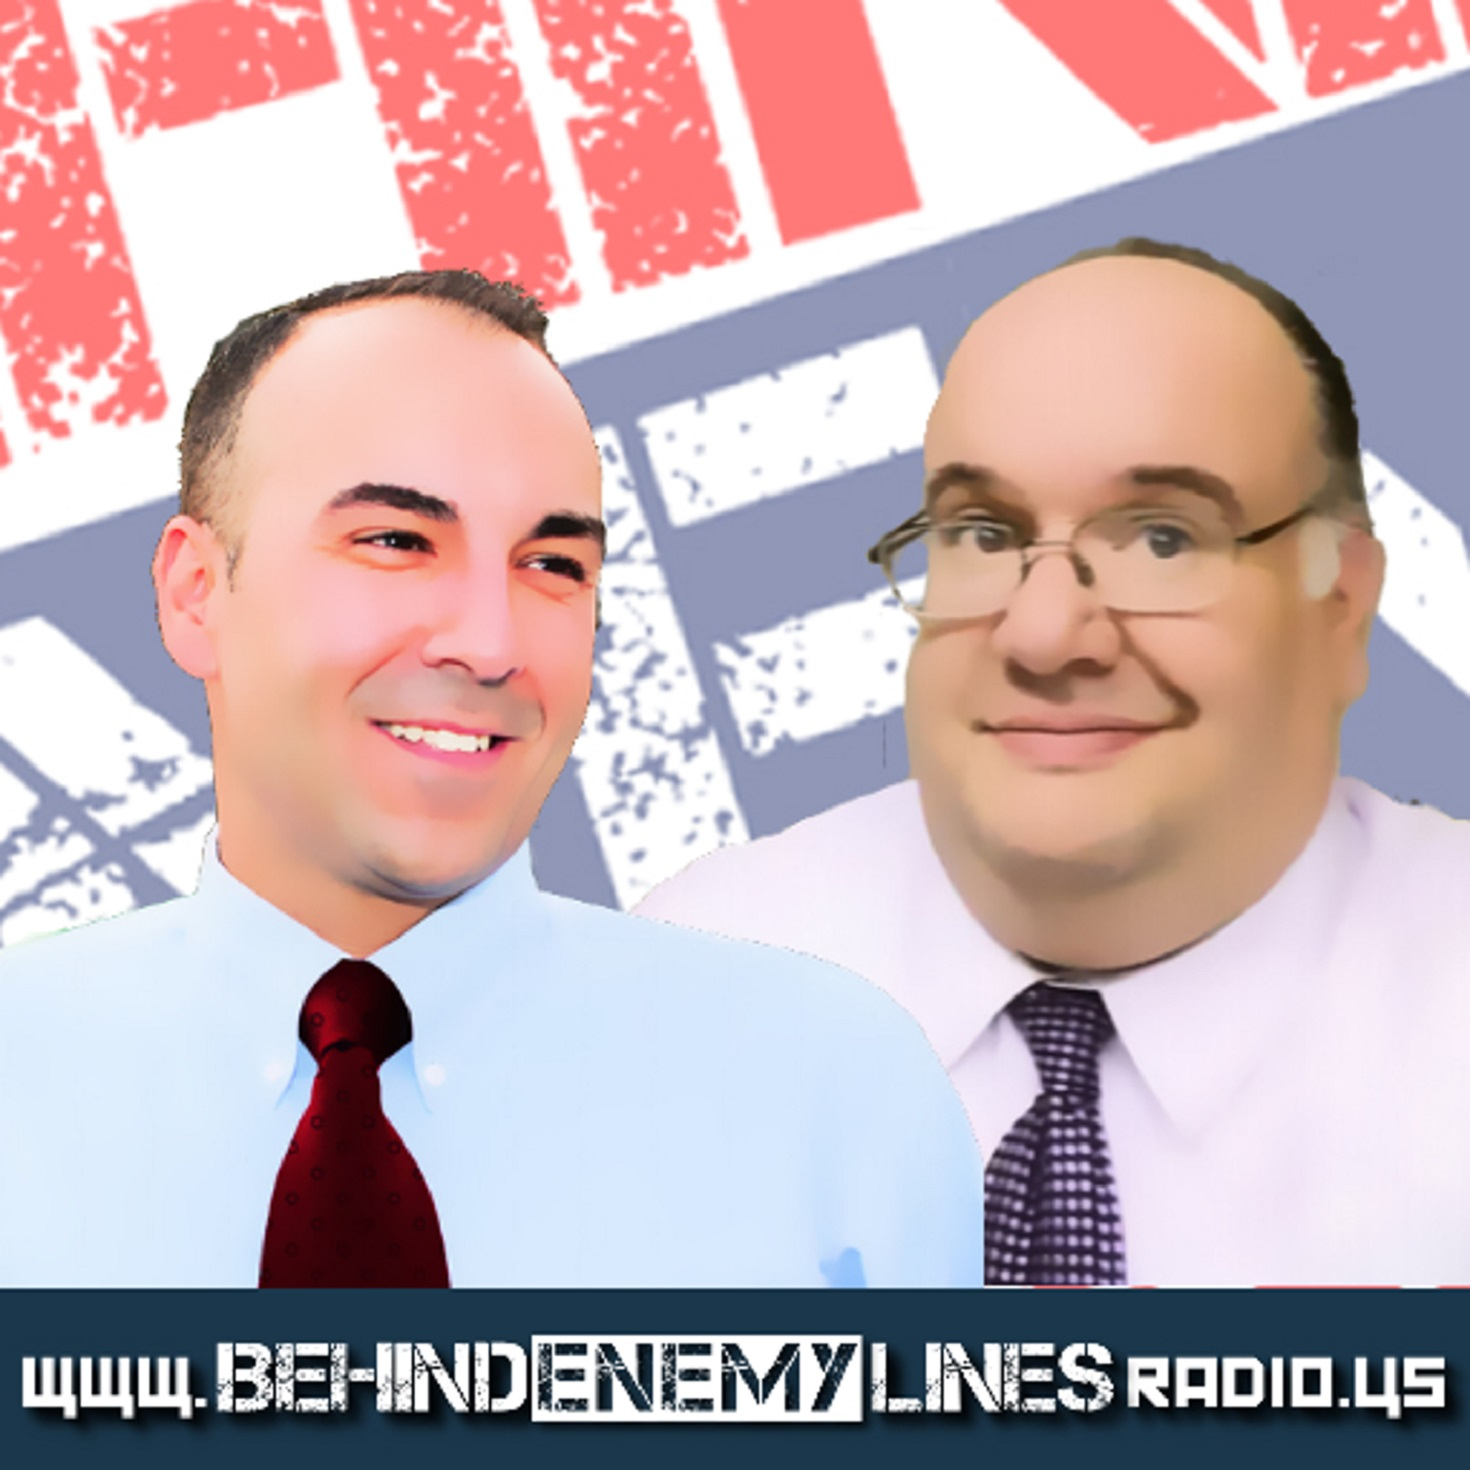 Behind Enemy Lines Radio